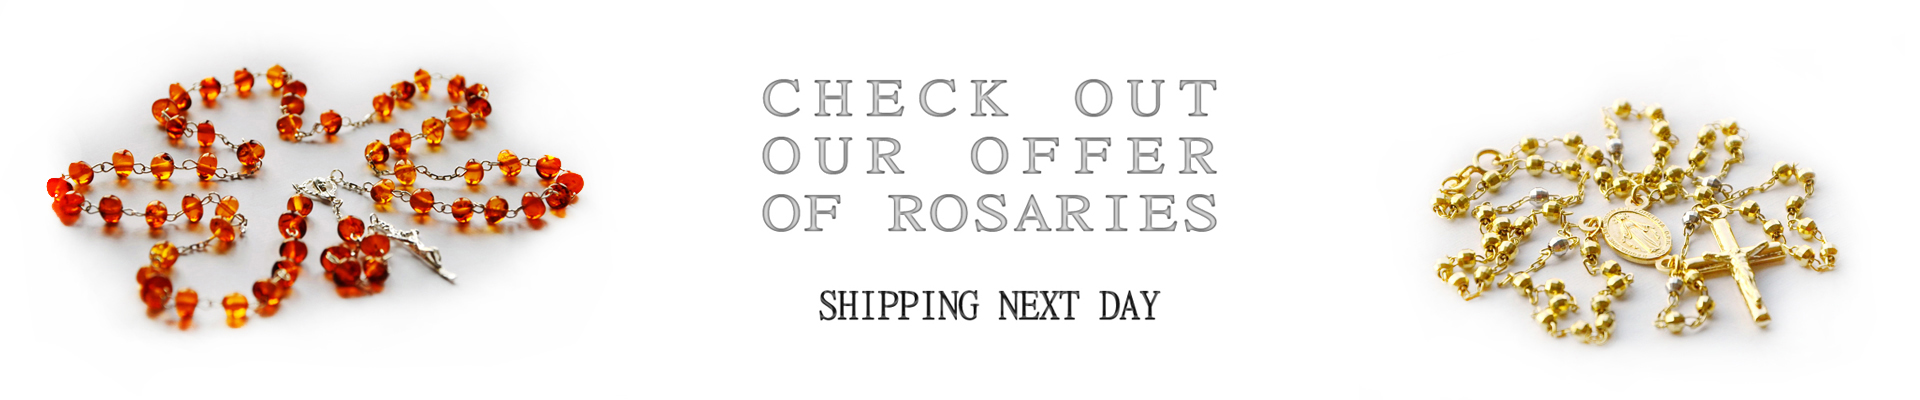 our new offer of rosaries